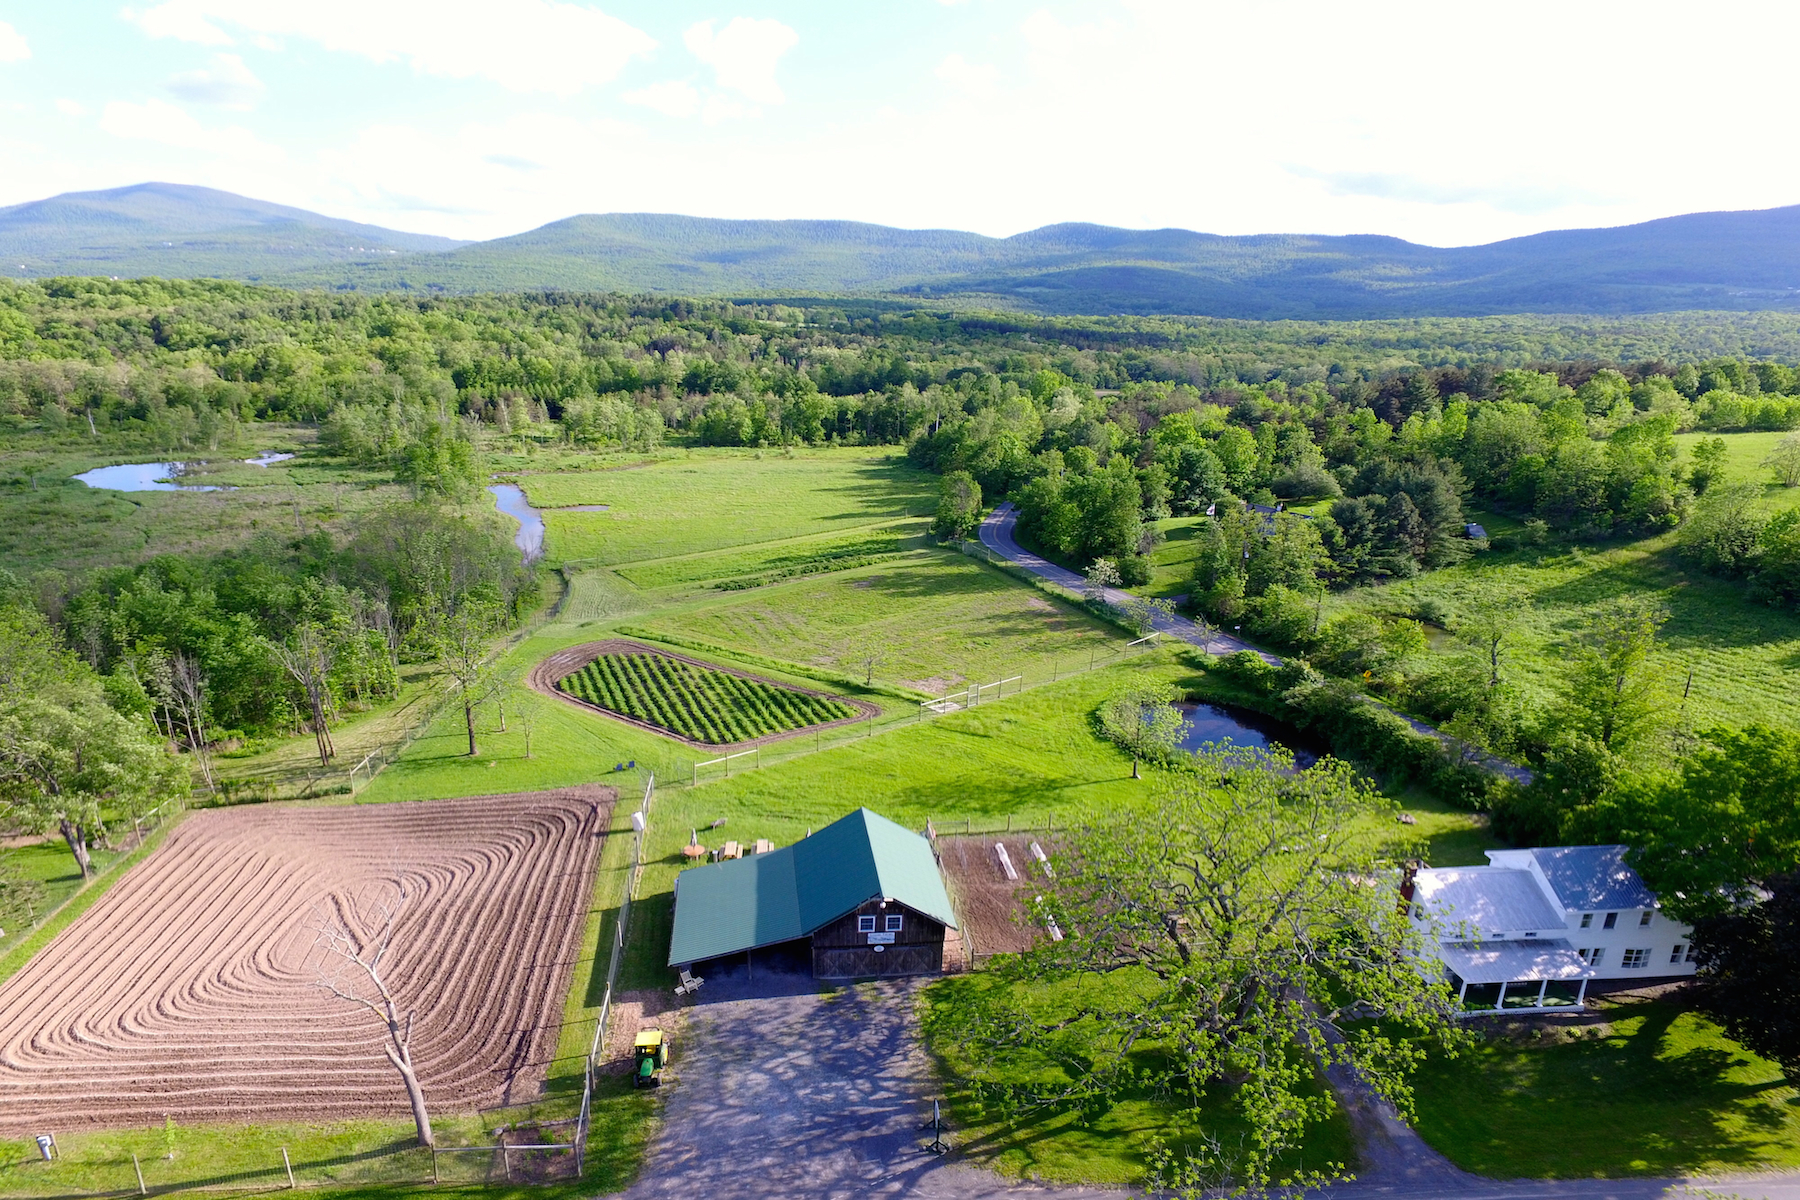 Maison unifamiliale pour l Vente à Greene Farms 1043 Stone Bridge Rd Cornwallville, New York 12418 États-Unis